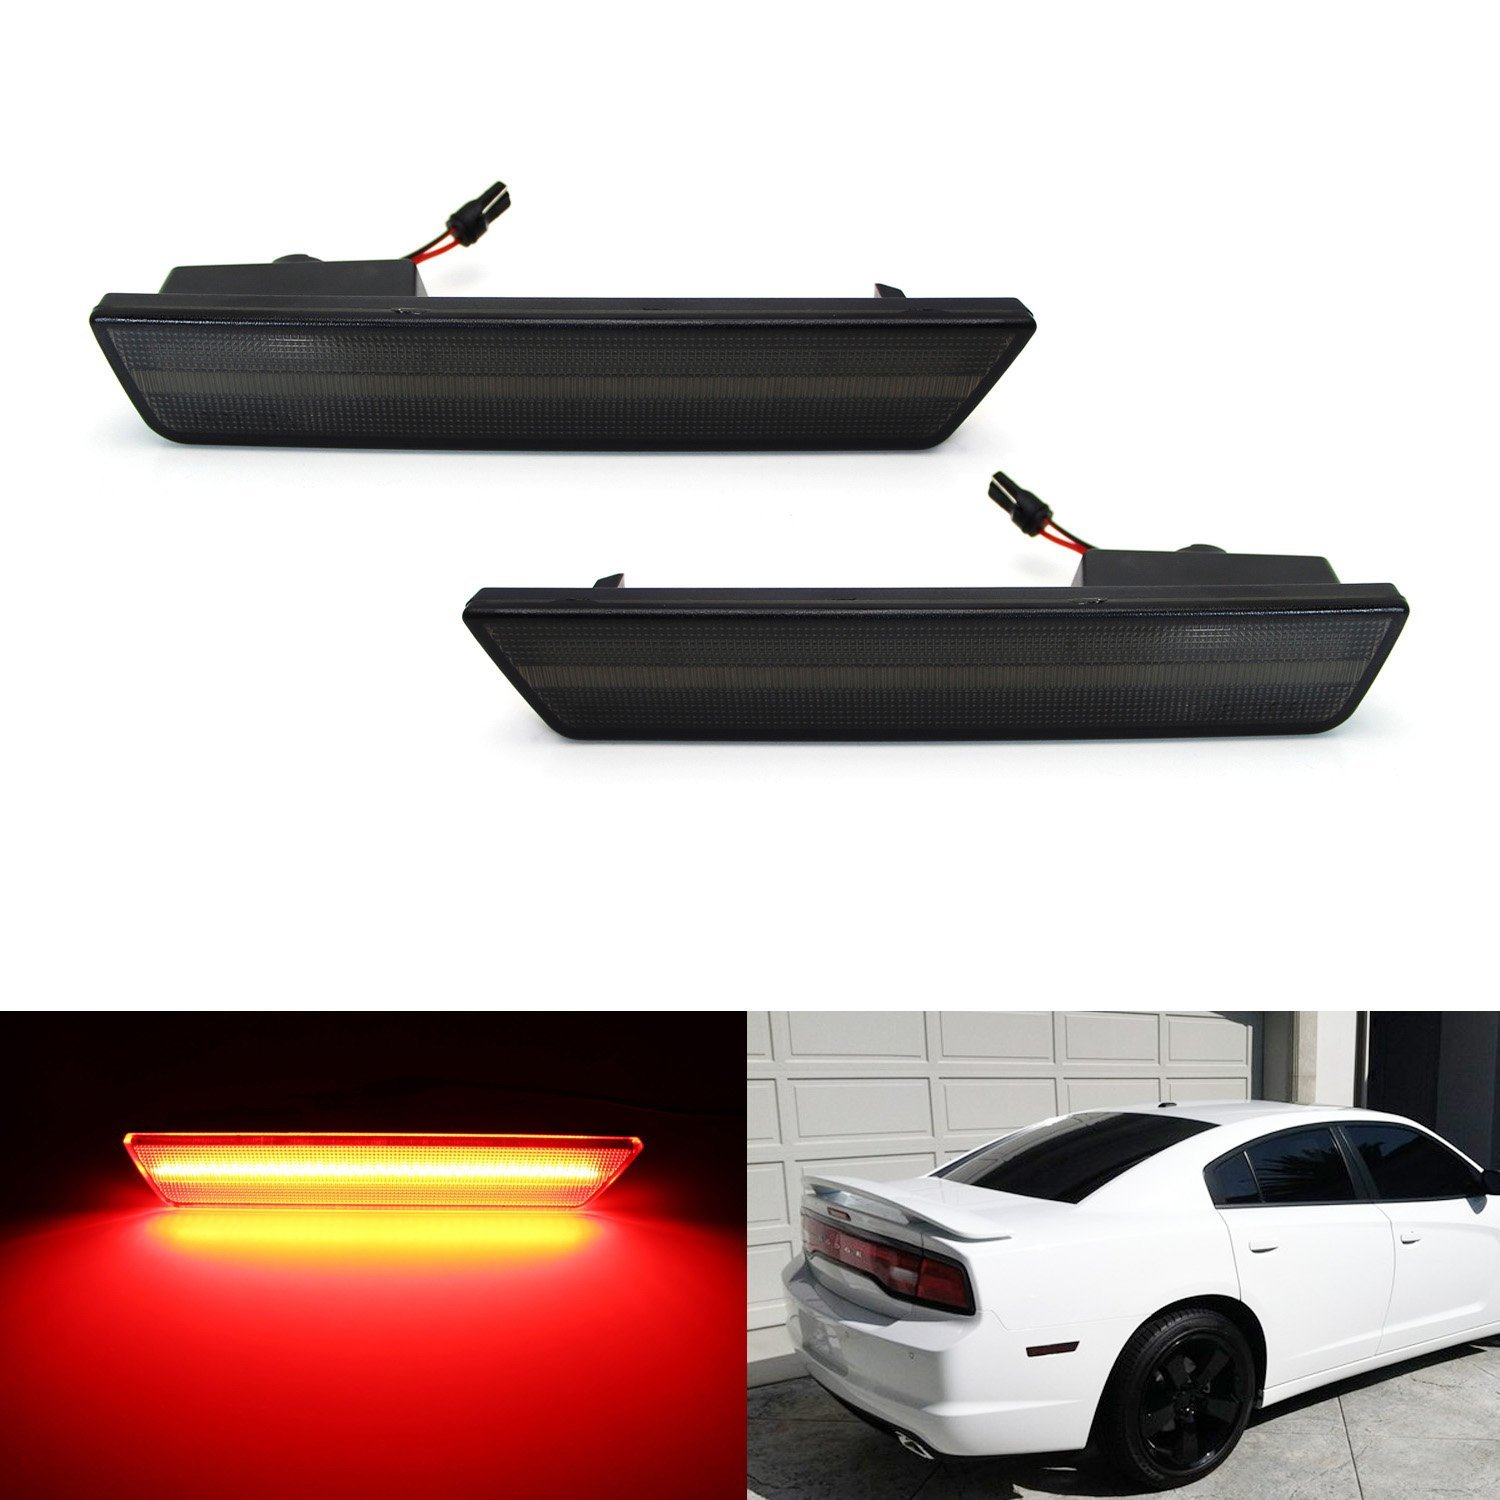 iJDMTOY (2) Smoked Lens Rear Side Marker Lamps with 36-SMD Red LED Lights For 2008-2014 Dodge Challenger, 2011-2014 Dodge Charger